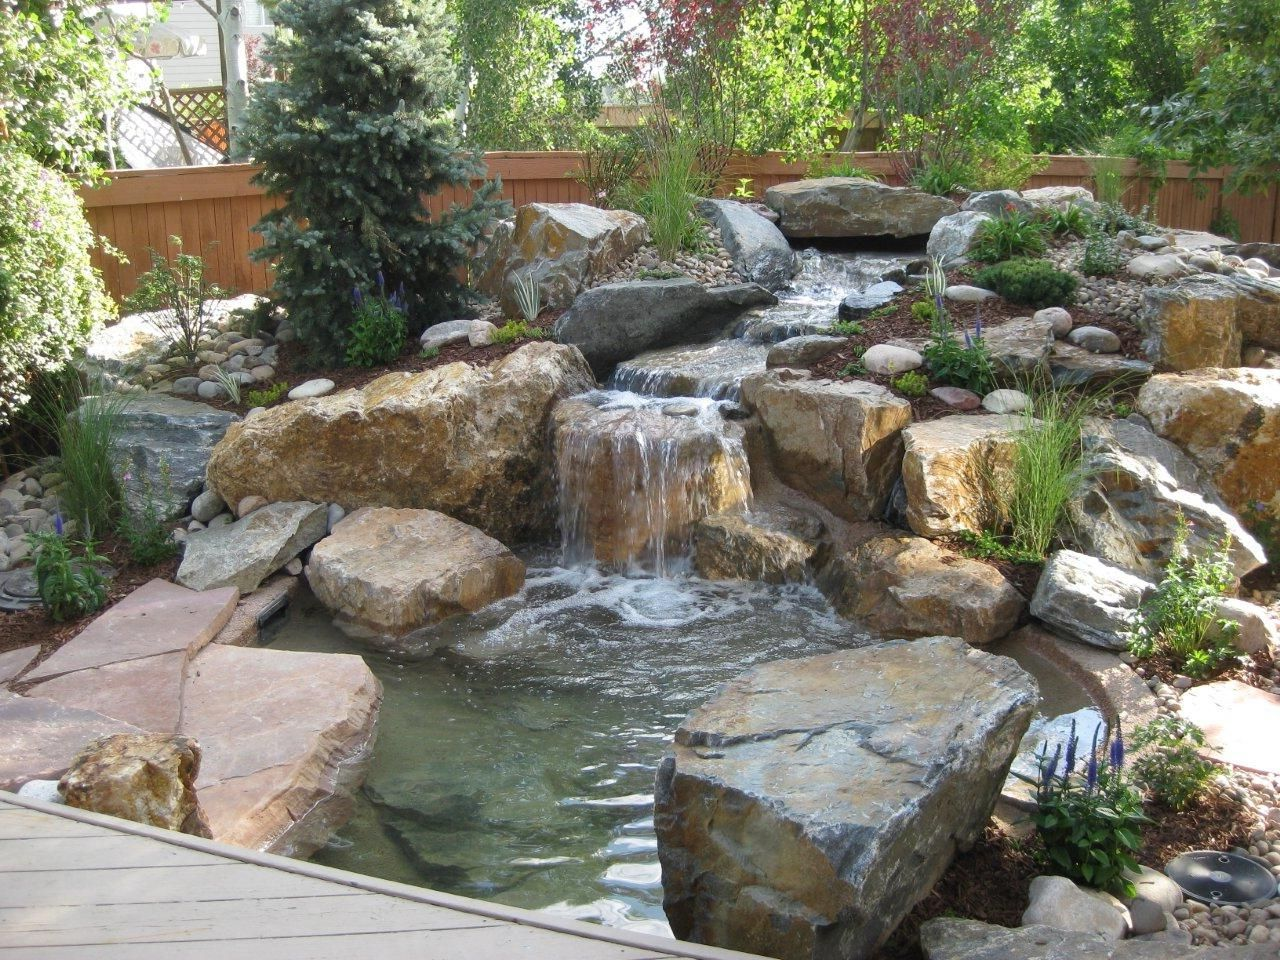 Garden Ponds Designs Concept 274 Best Ponds & Water Features Images On Pinterest  Garden Ponds .